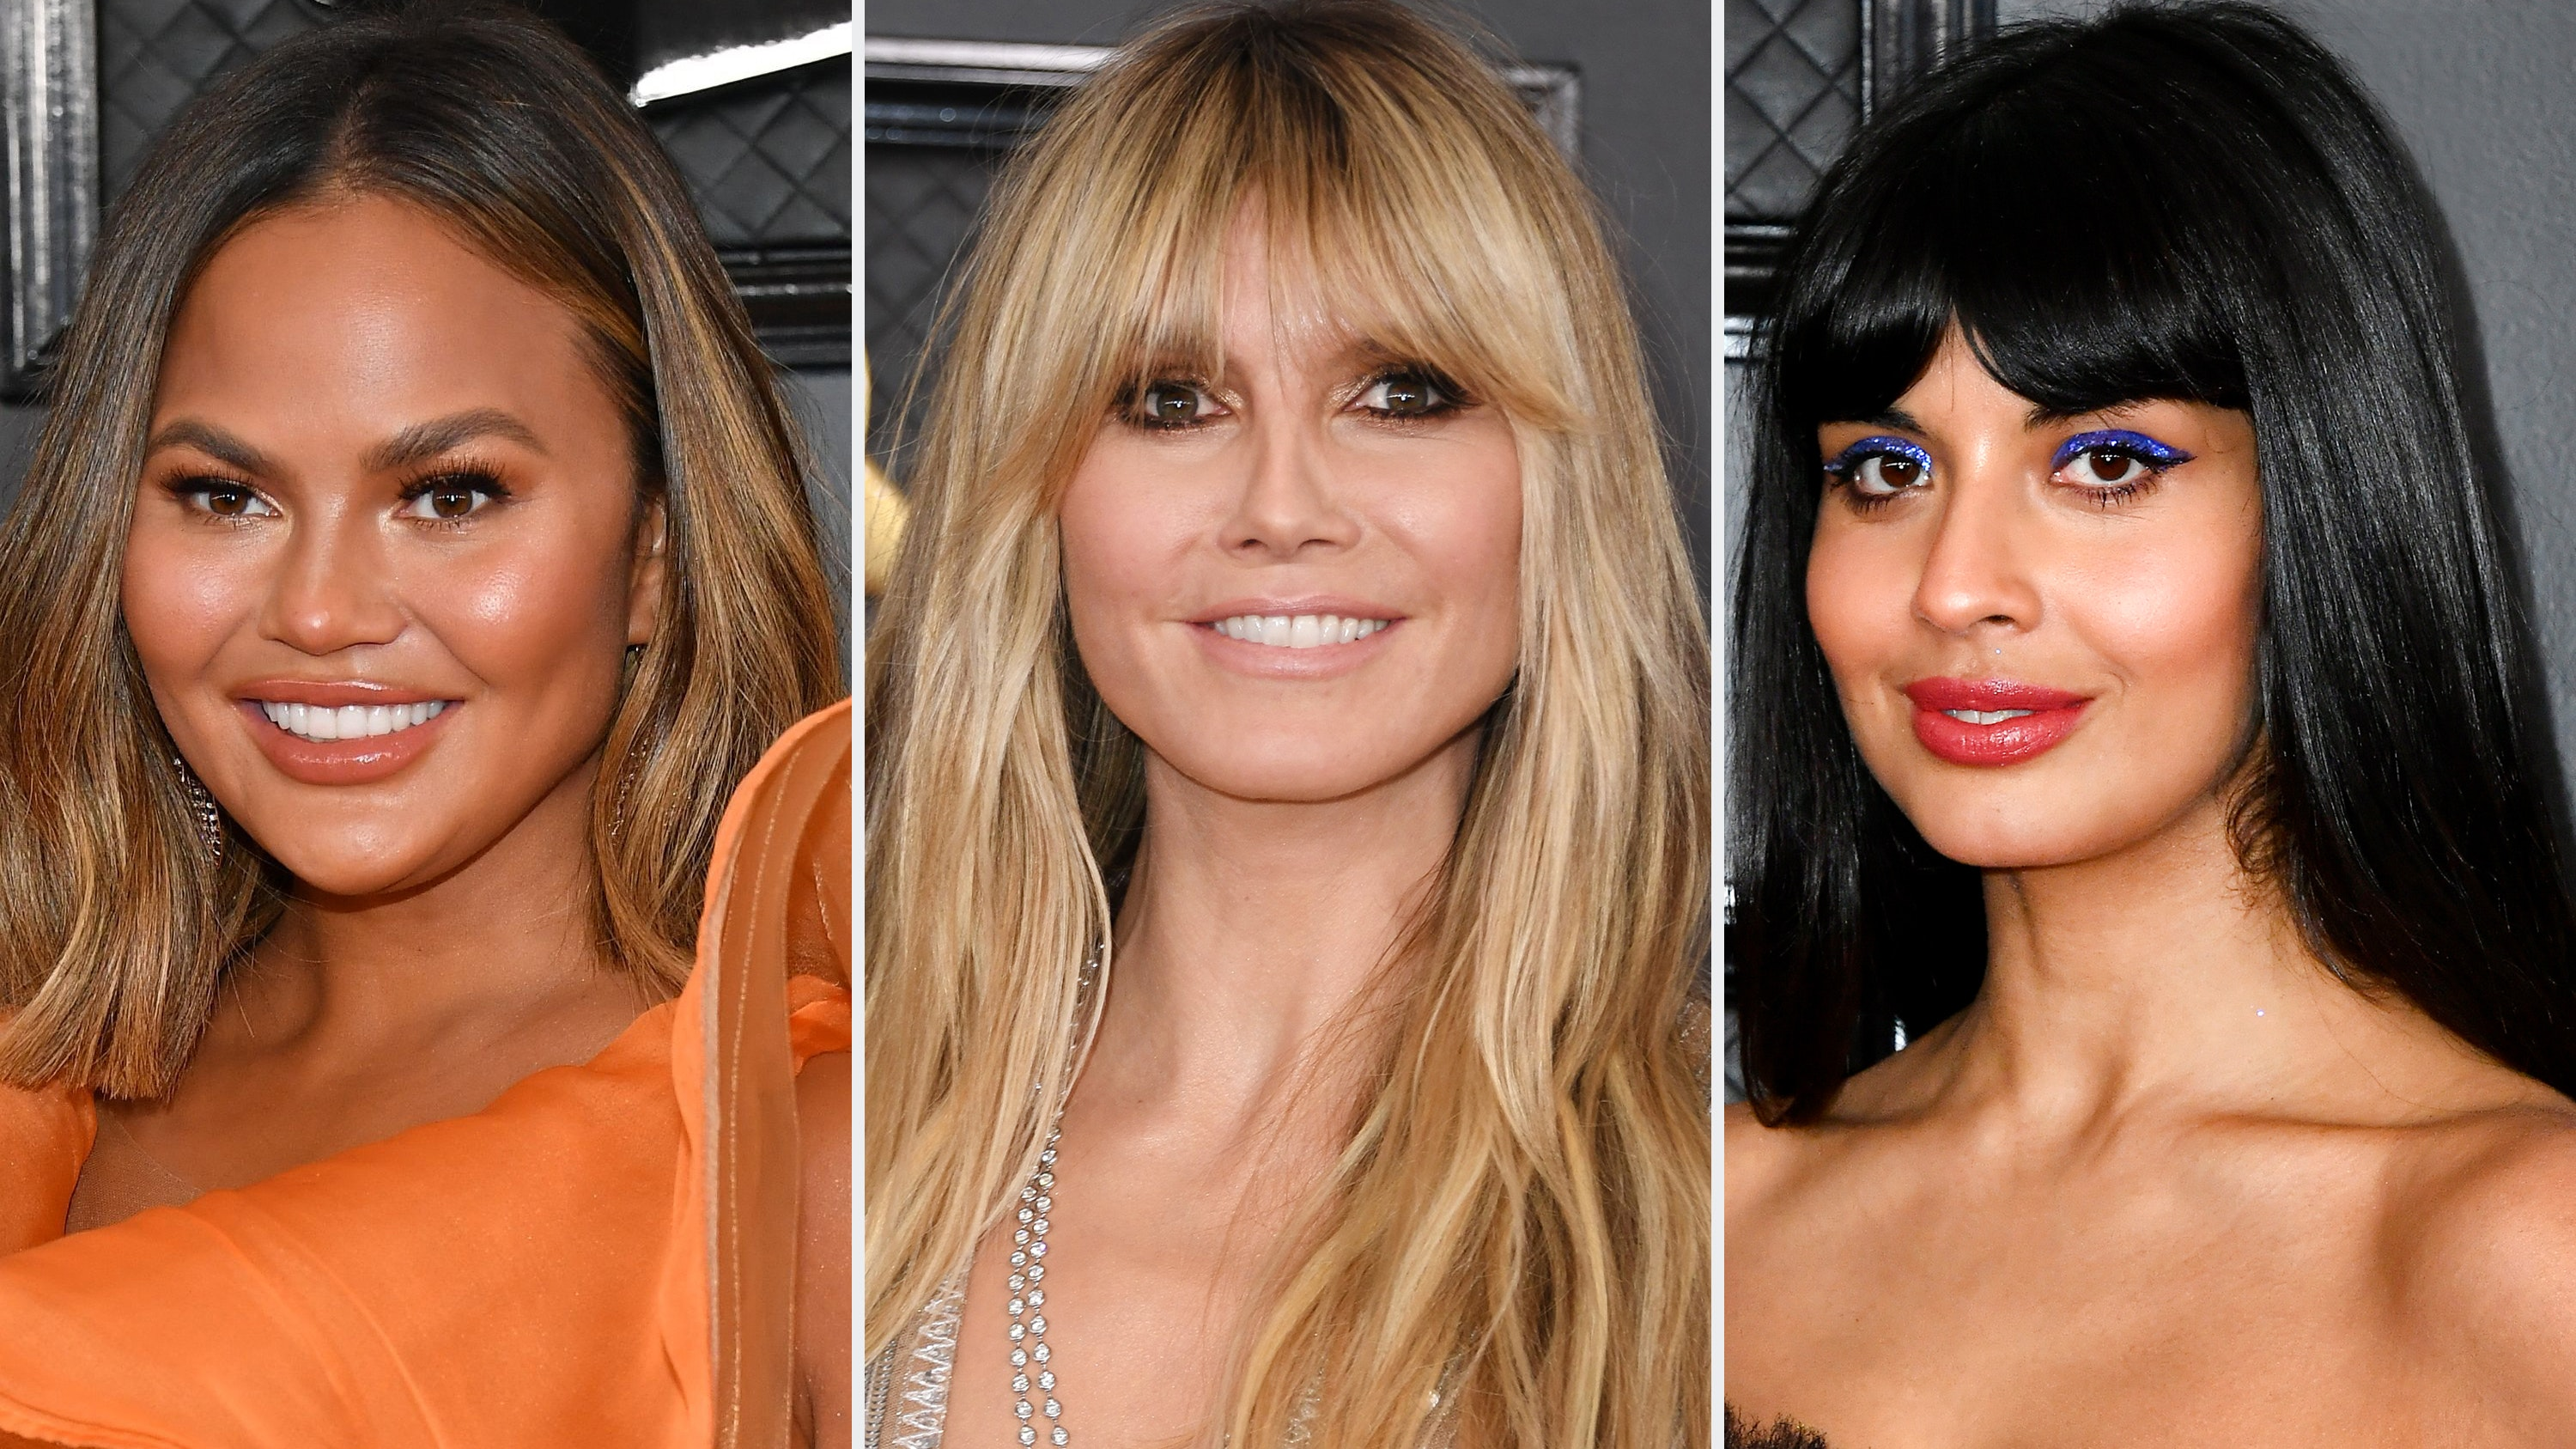 12 of the Most Glamourous, Head-Turning Beauty Looks at the 2020 GRAMMY Awards